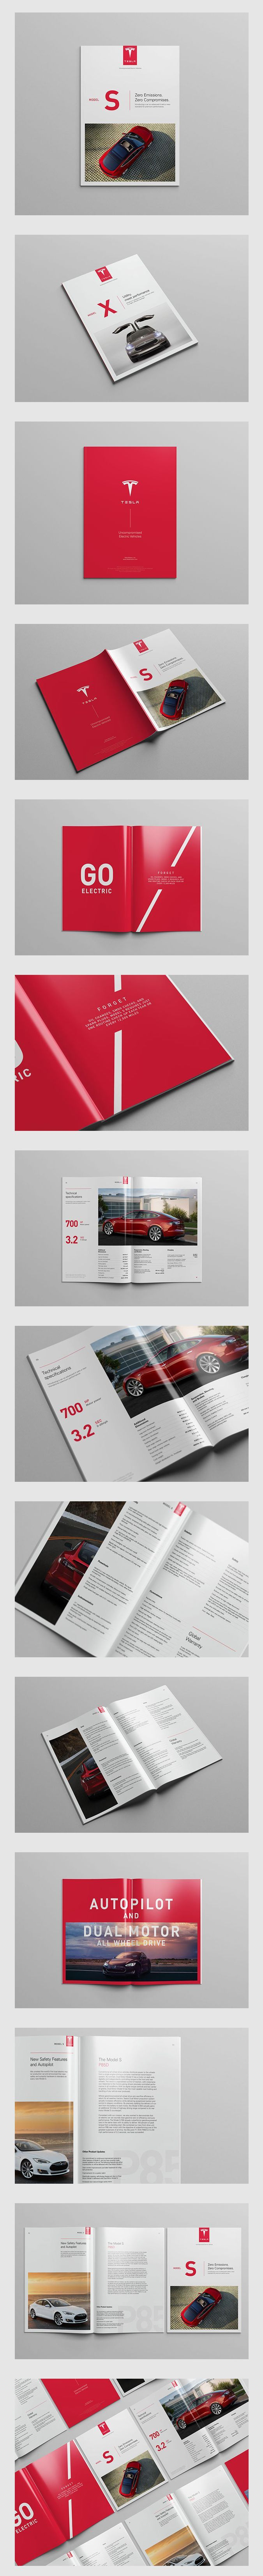 https://www.behance.net/gallery/21436127/Tesla-Model-S-Catalog